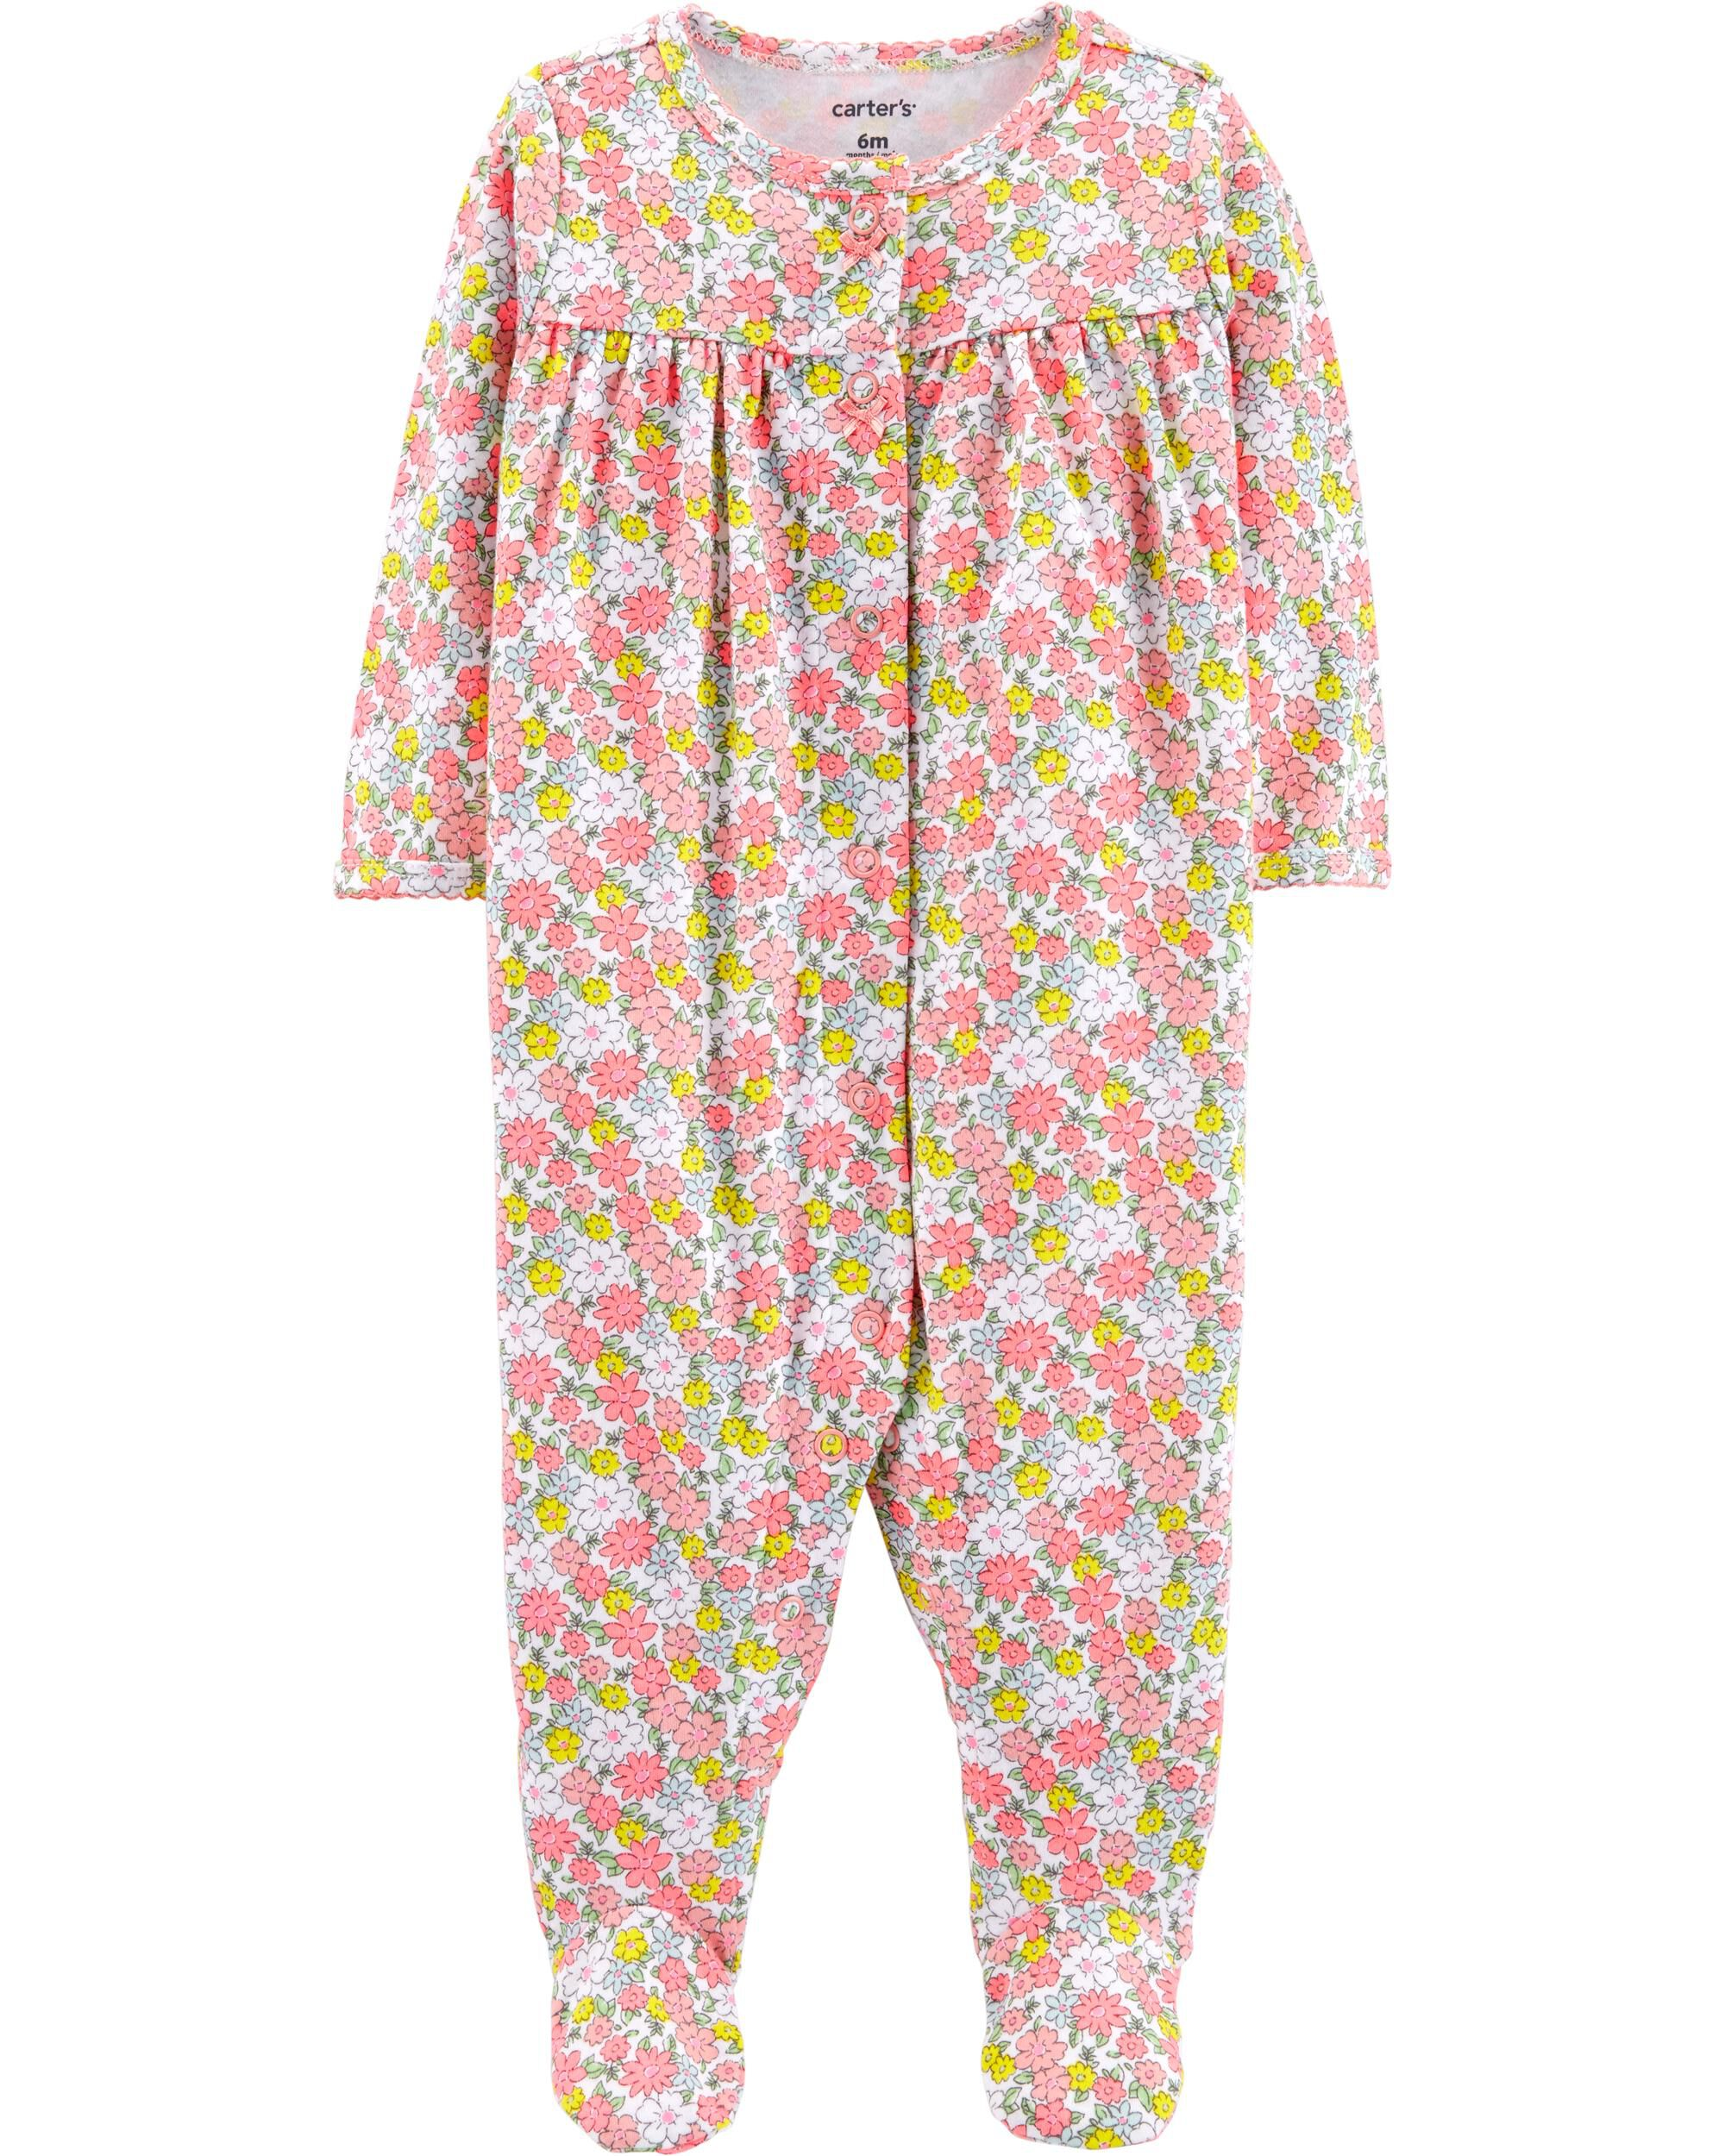 Floral Snap-Up Cotton Sleep \u0026 Play Baby Girl Pajamas | Carter\u0027s Free Shipping